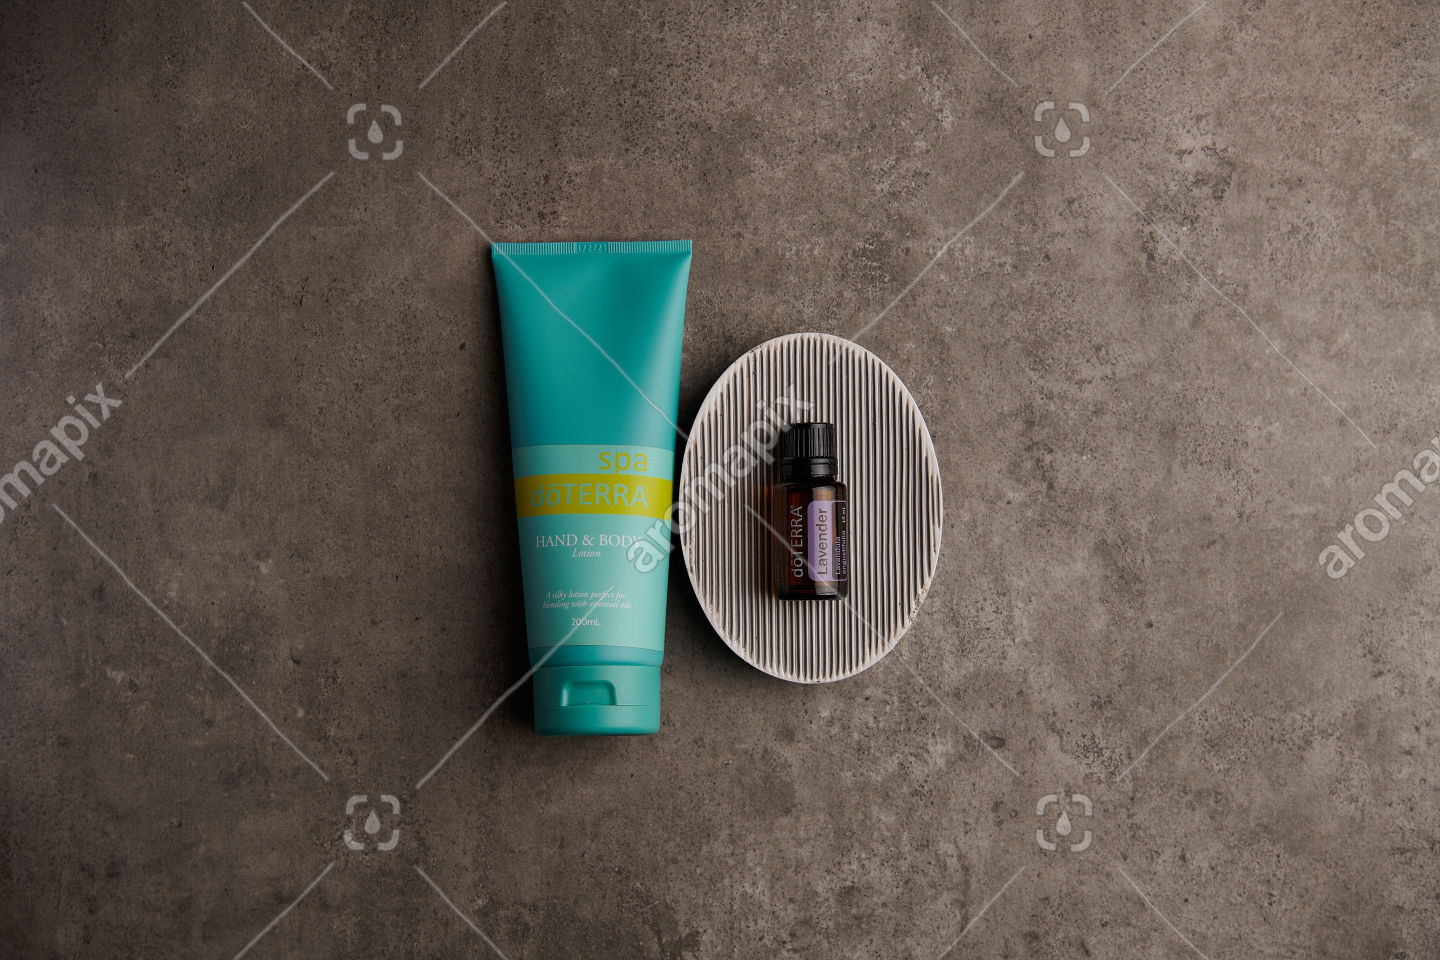 doTERRA Spa Hand and Body Lotion and Lavender essential oil on stone